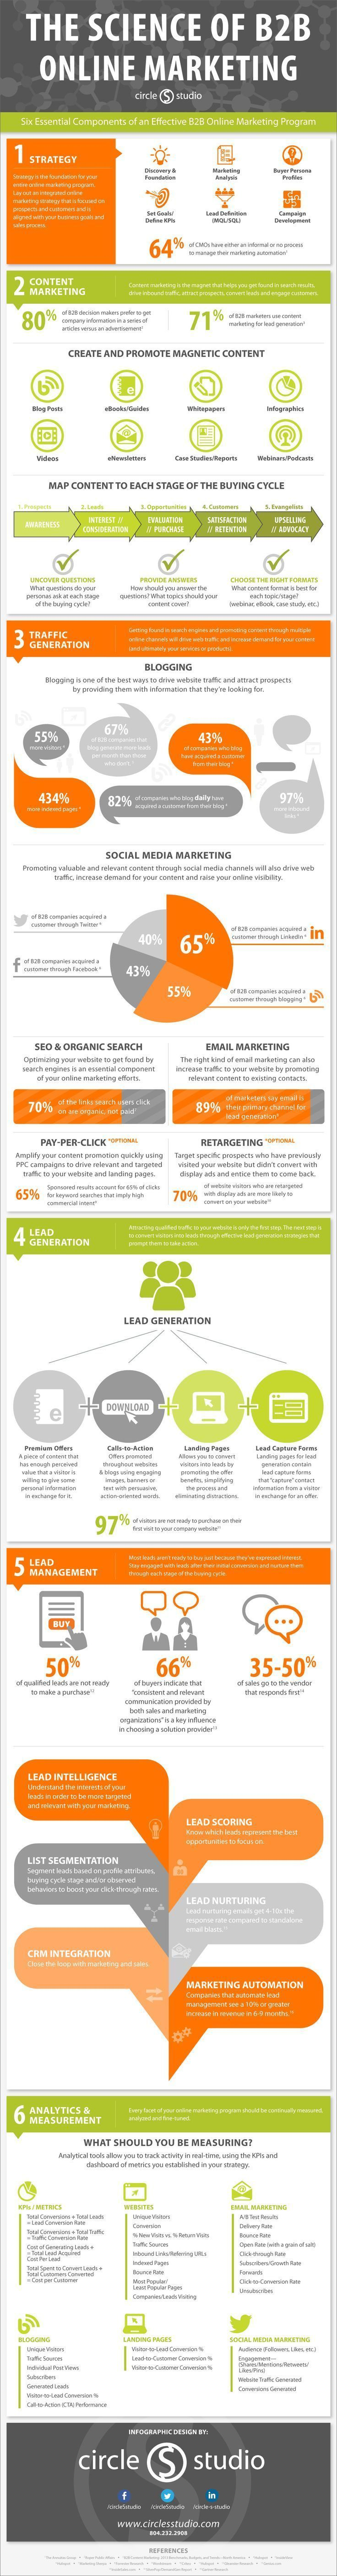 The Science of #B2B Marketing: 6 Tips For Creating a Better B2B Marketing Campaign (Infographic) | Inc.com